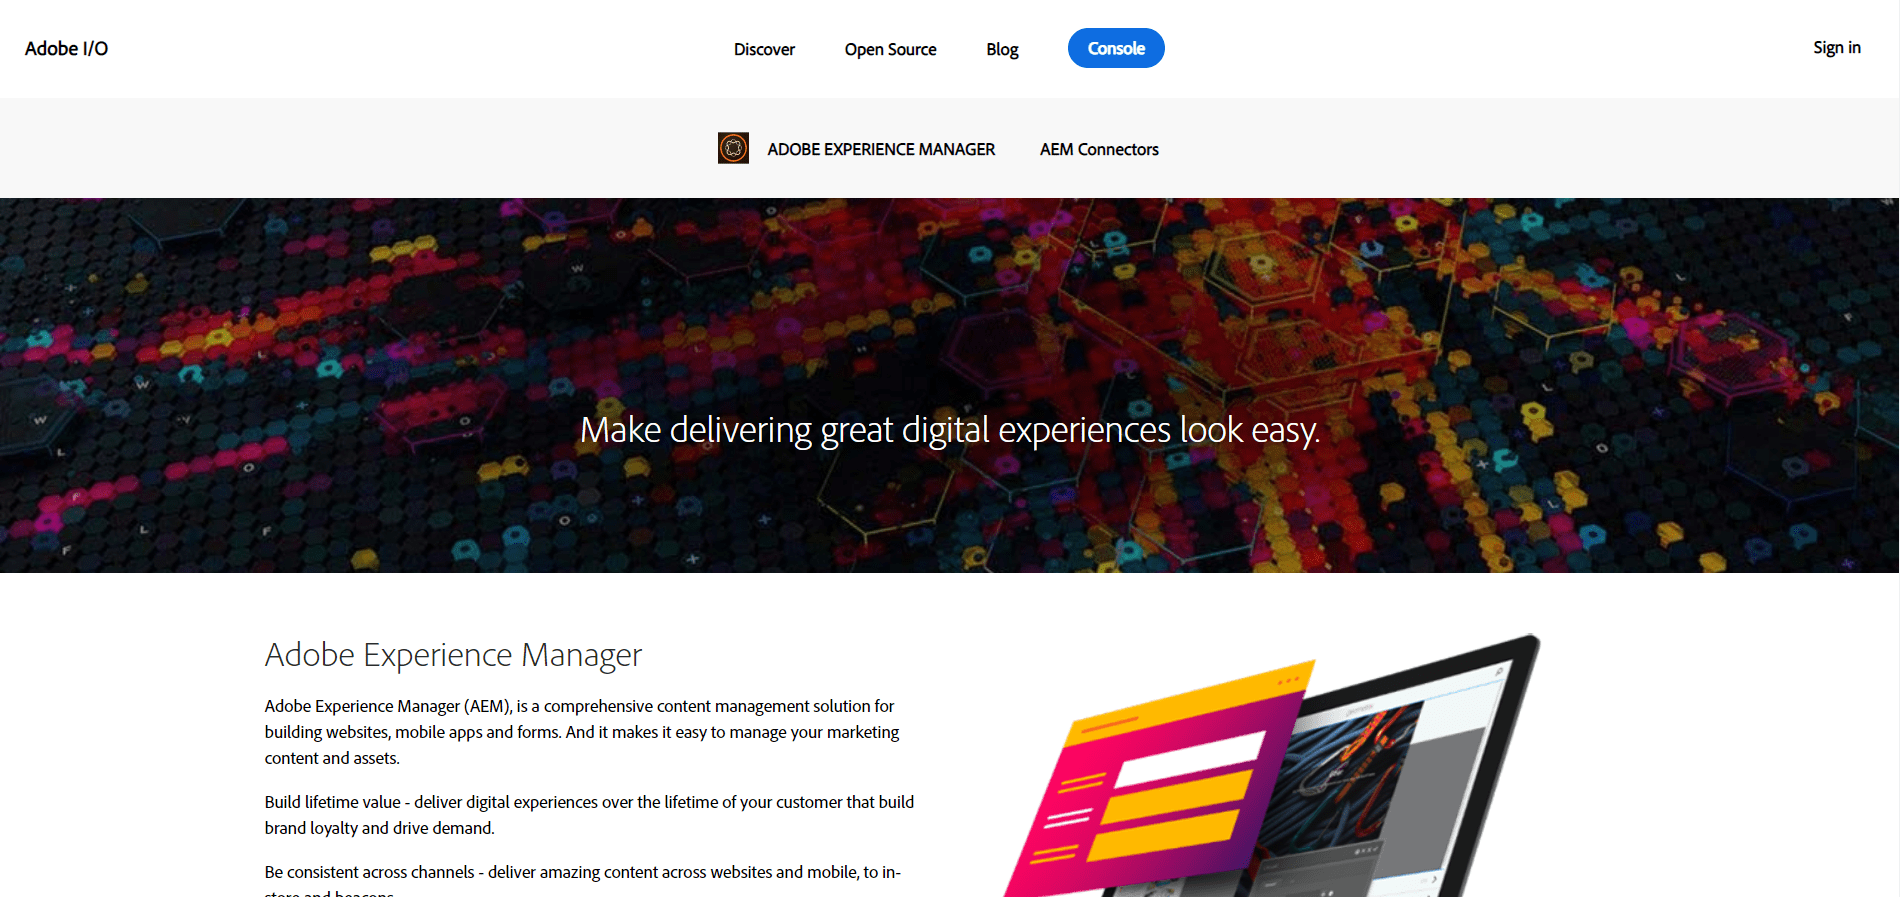 Adobe Experience Manager tool